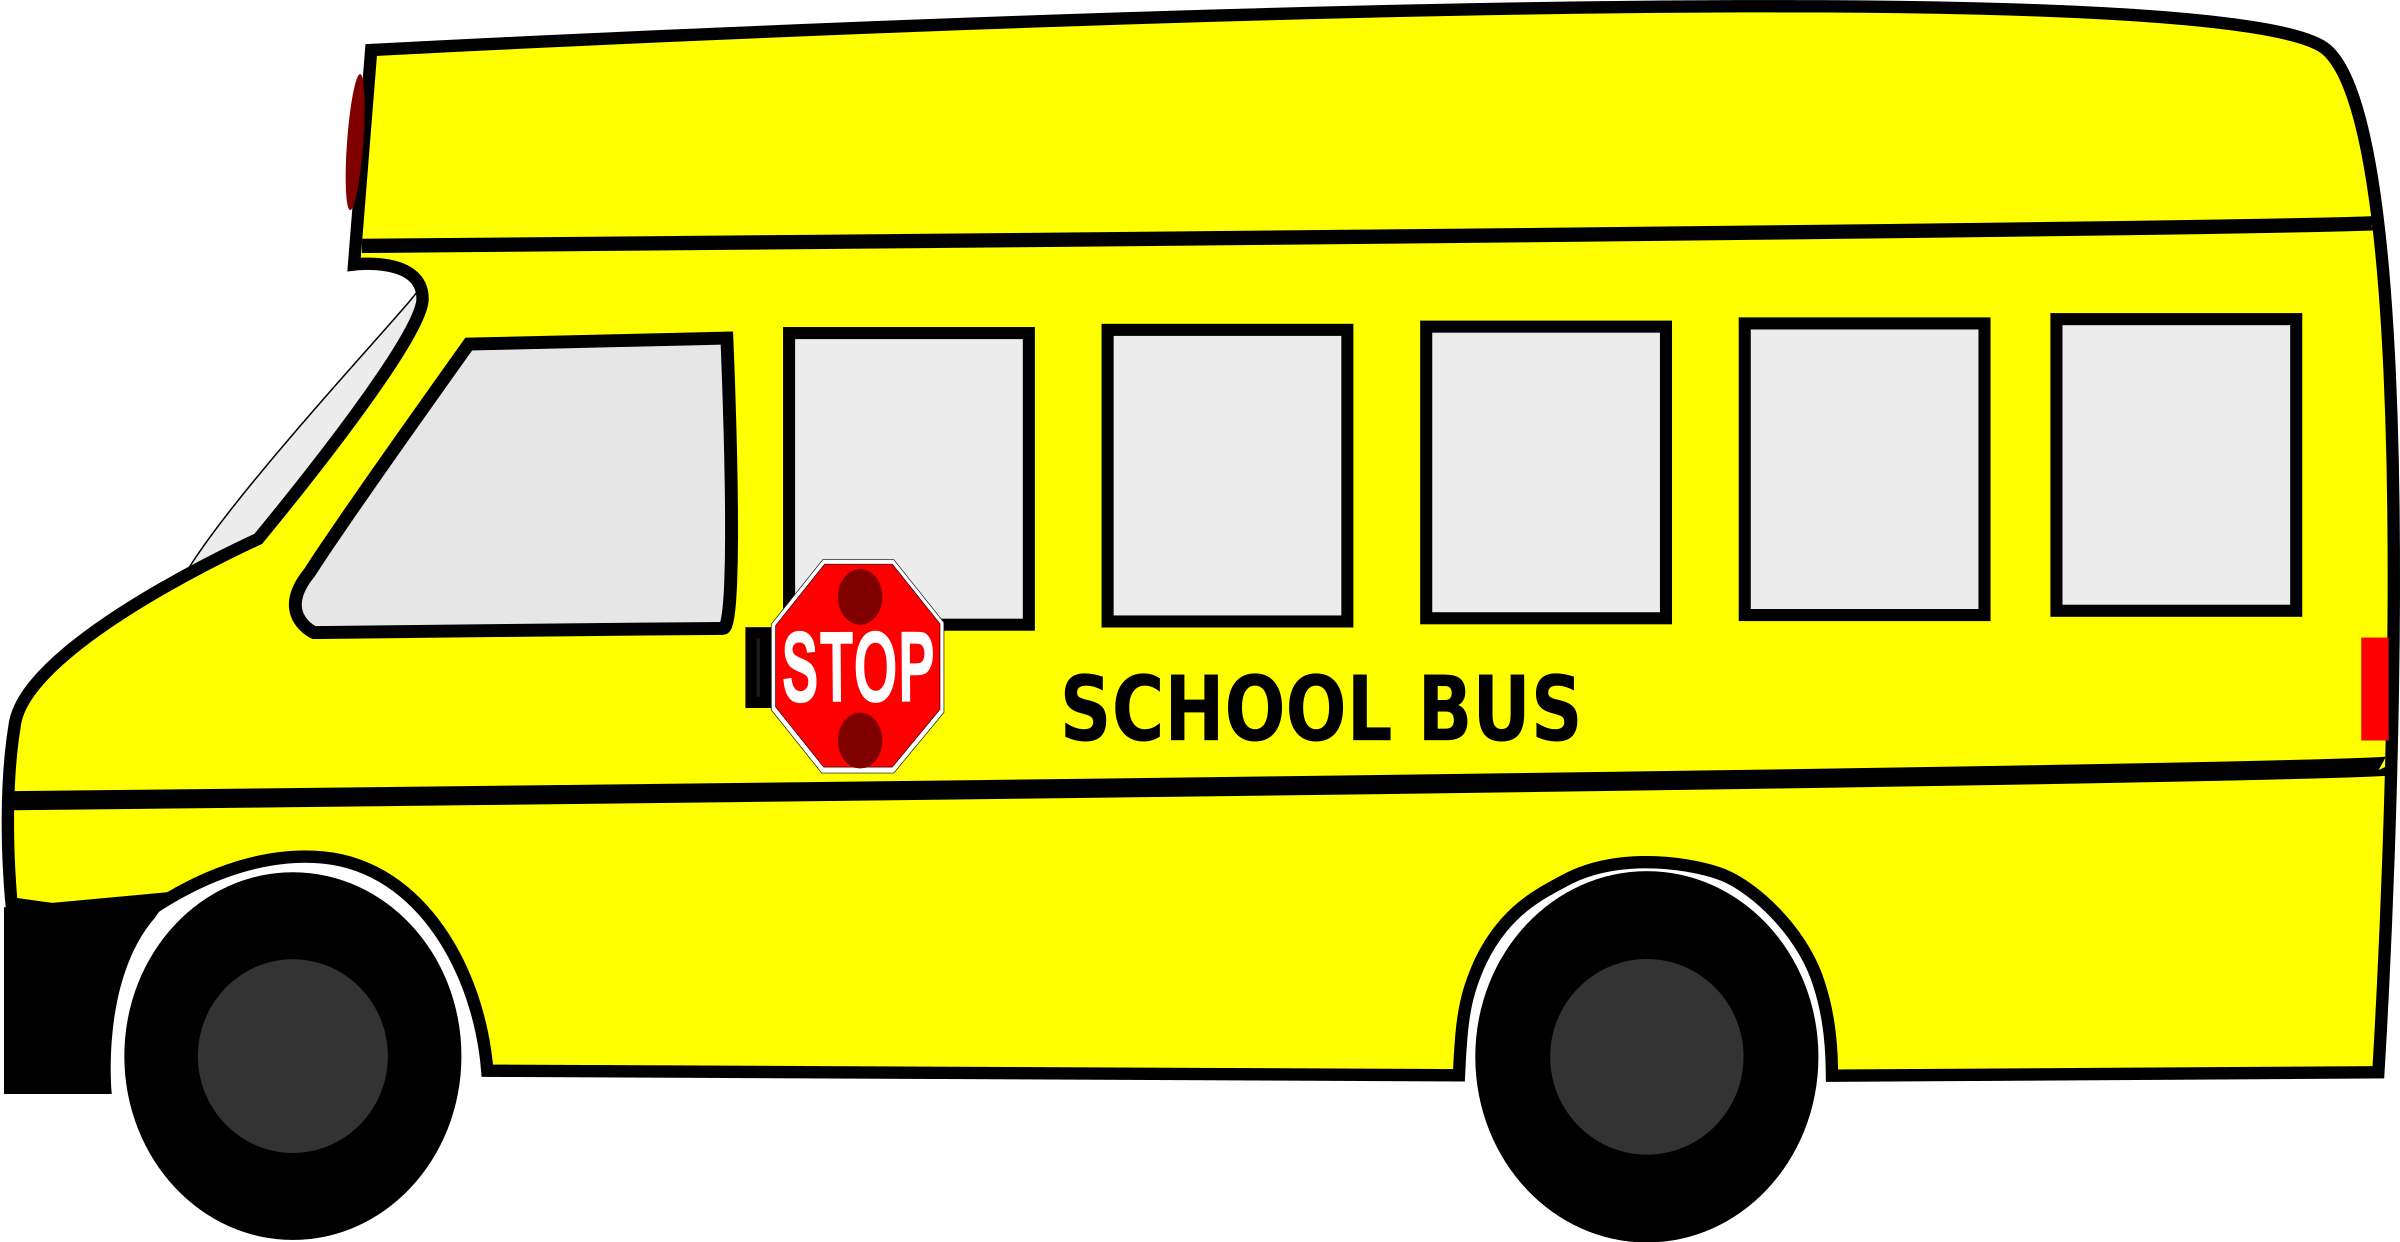 Getting on school bus clipart svg transparent download Clipart - School Bus svg transparent download